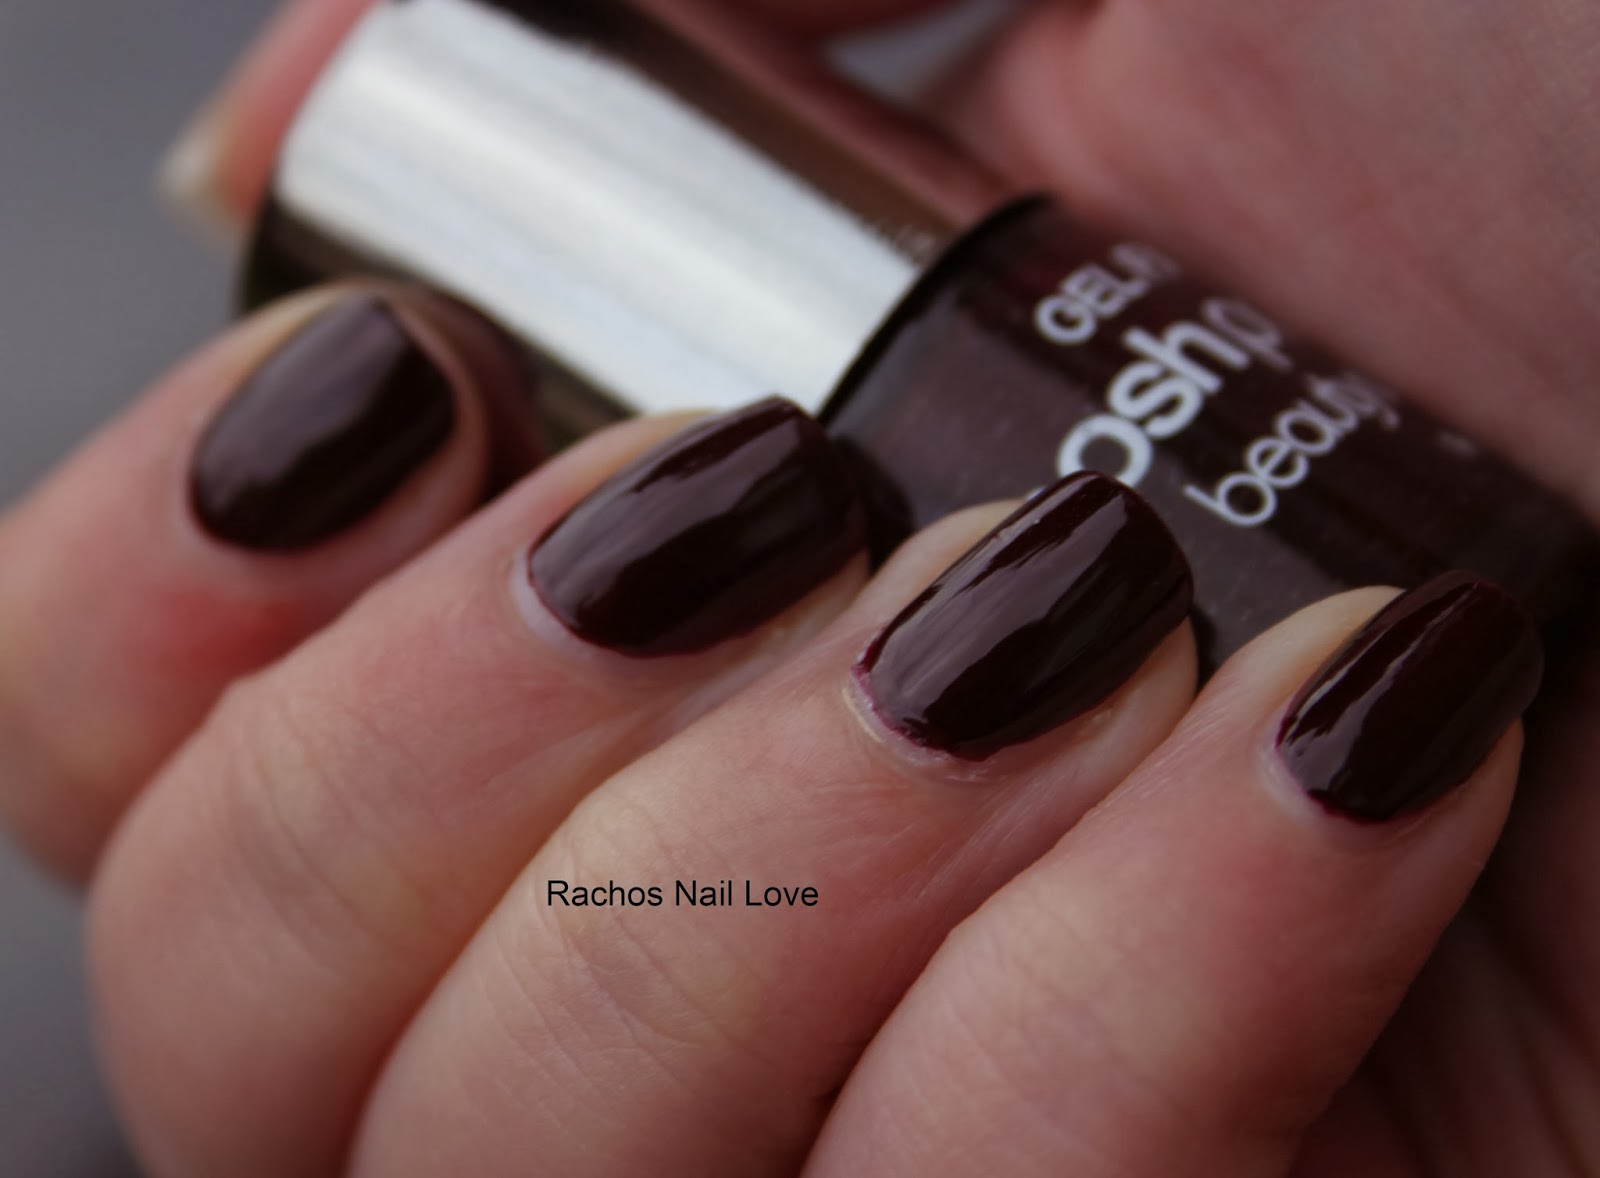 Racho\'s Nail Love: Beauty UK Posh Polish Gel FX - Swatches and Review